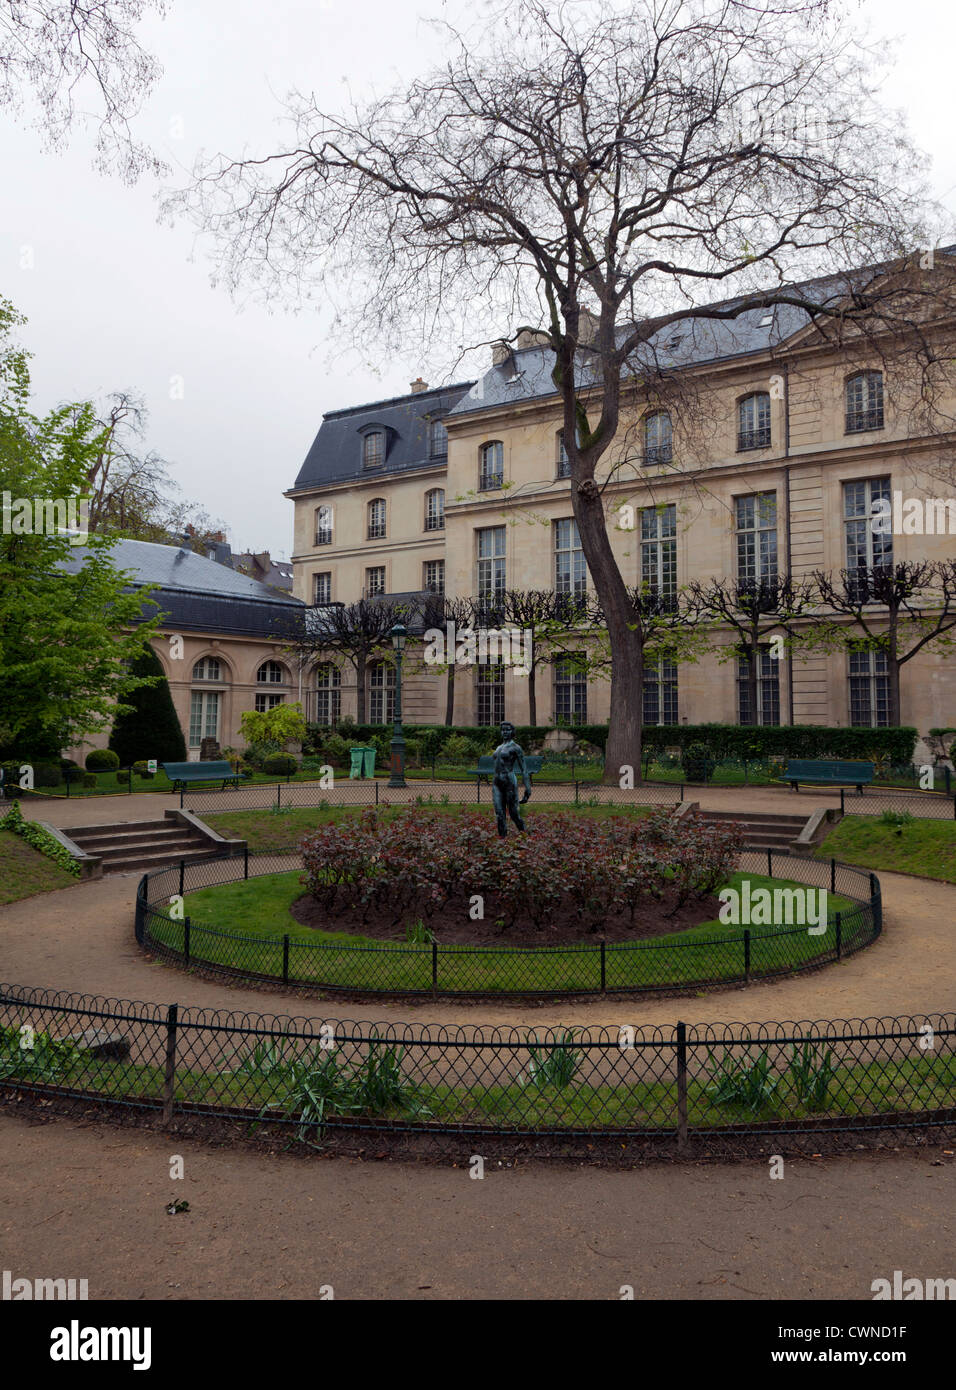 The Square Georges Cain, near Musee Carnavalet, Paris, France - Stock Image